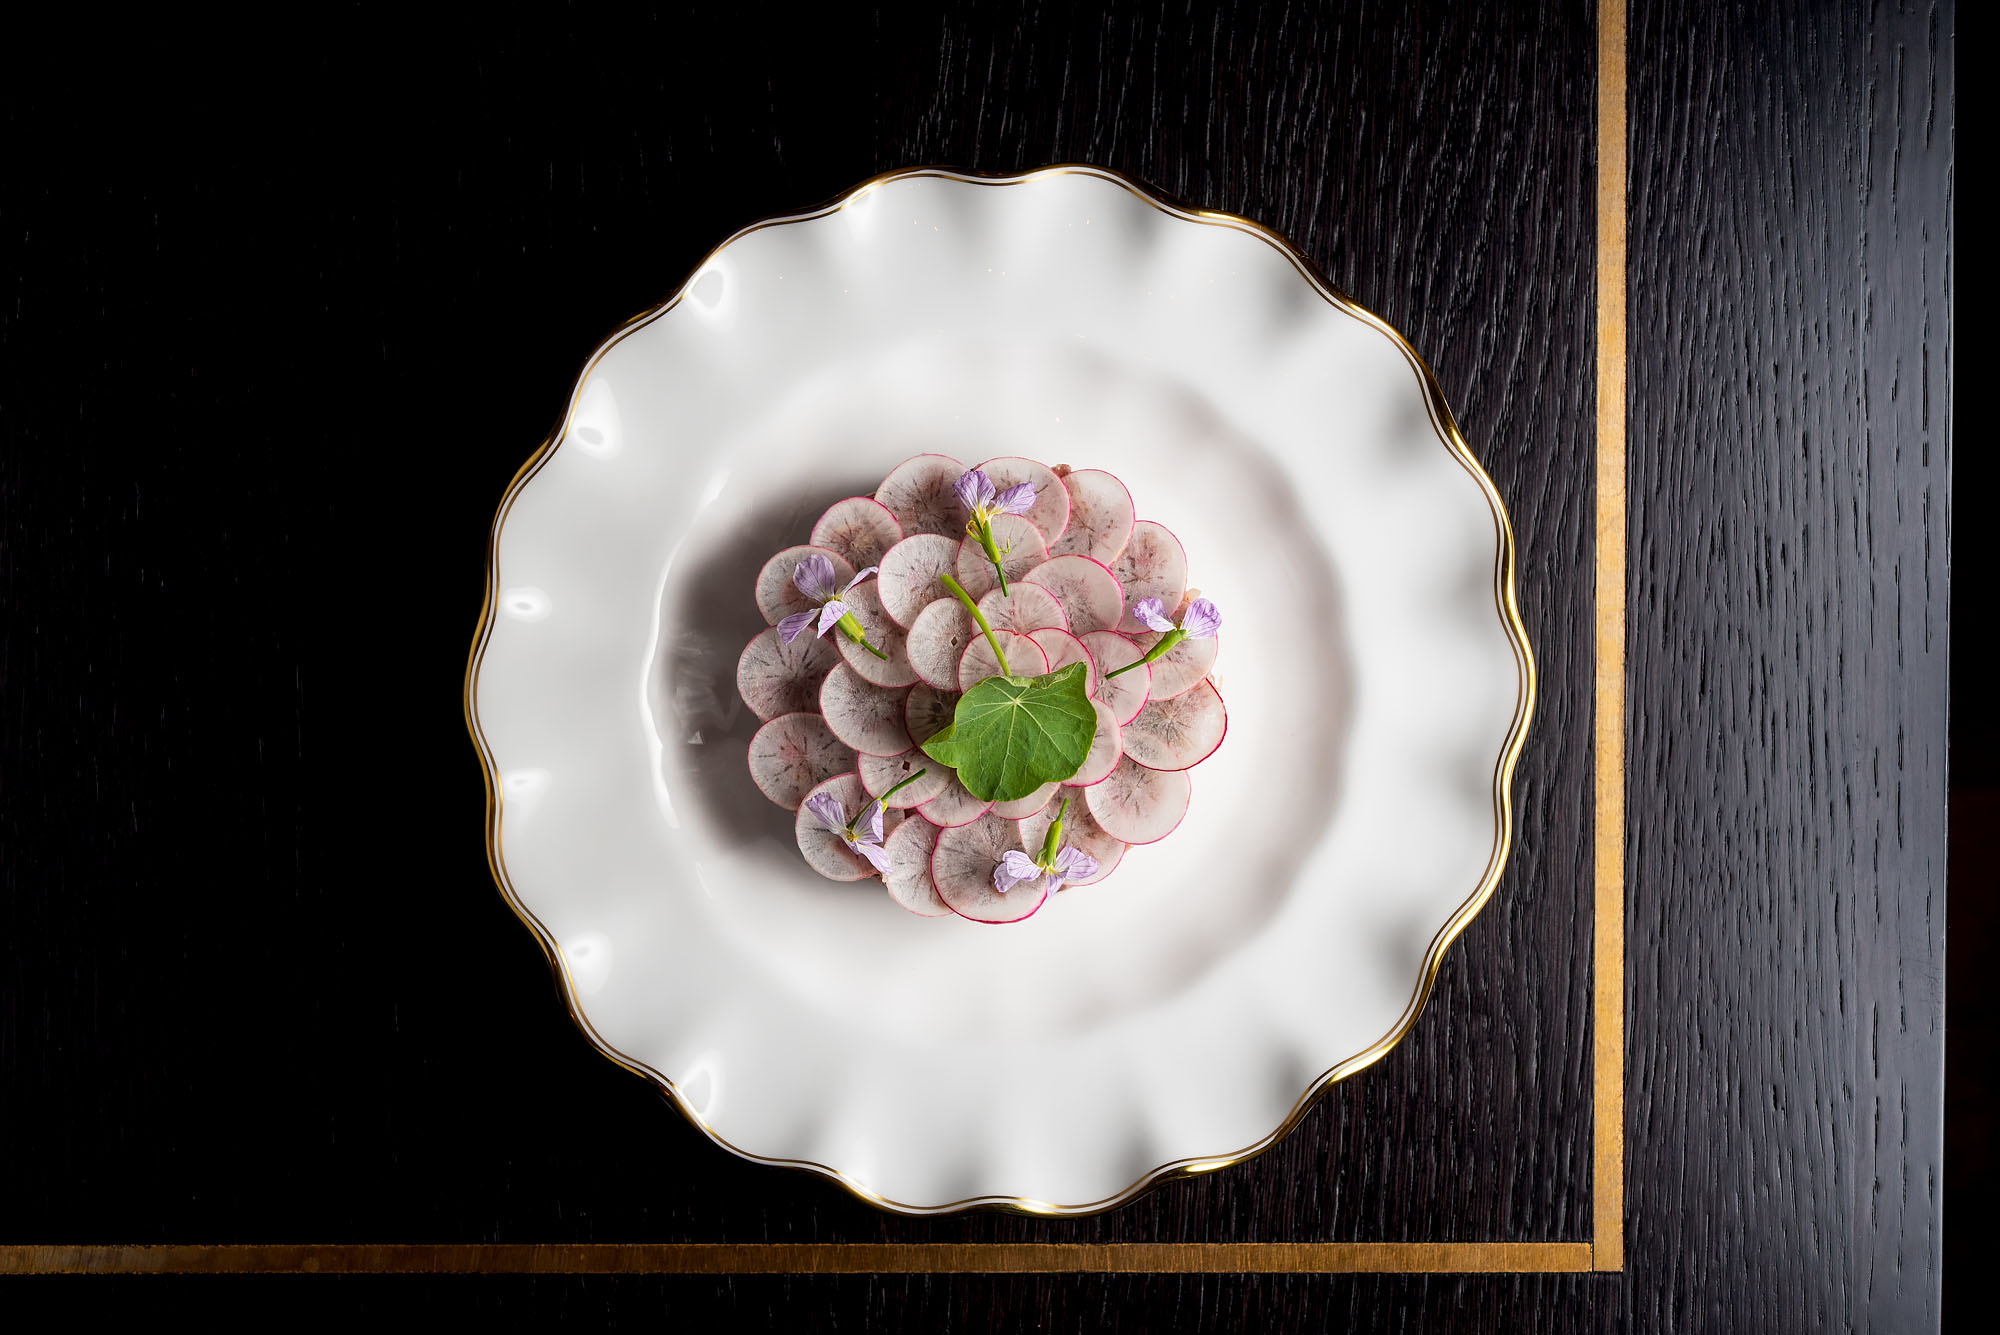 A gorgeous plate of radishes over beef tartare on a simple white plate.